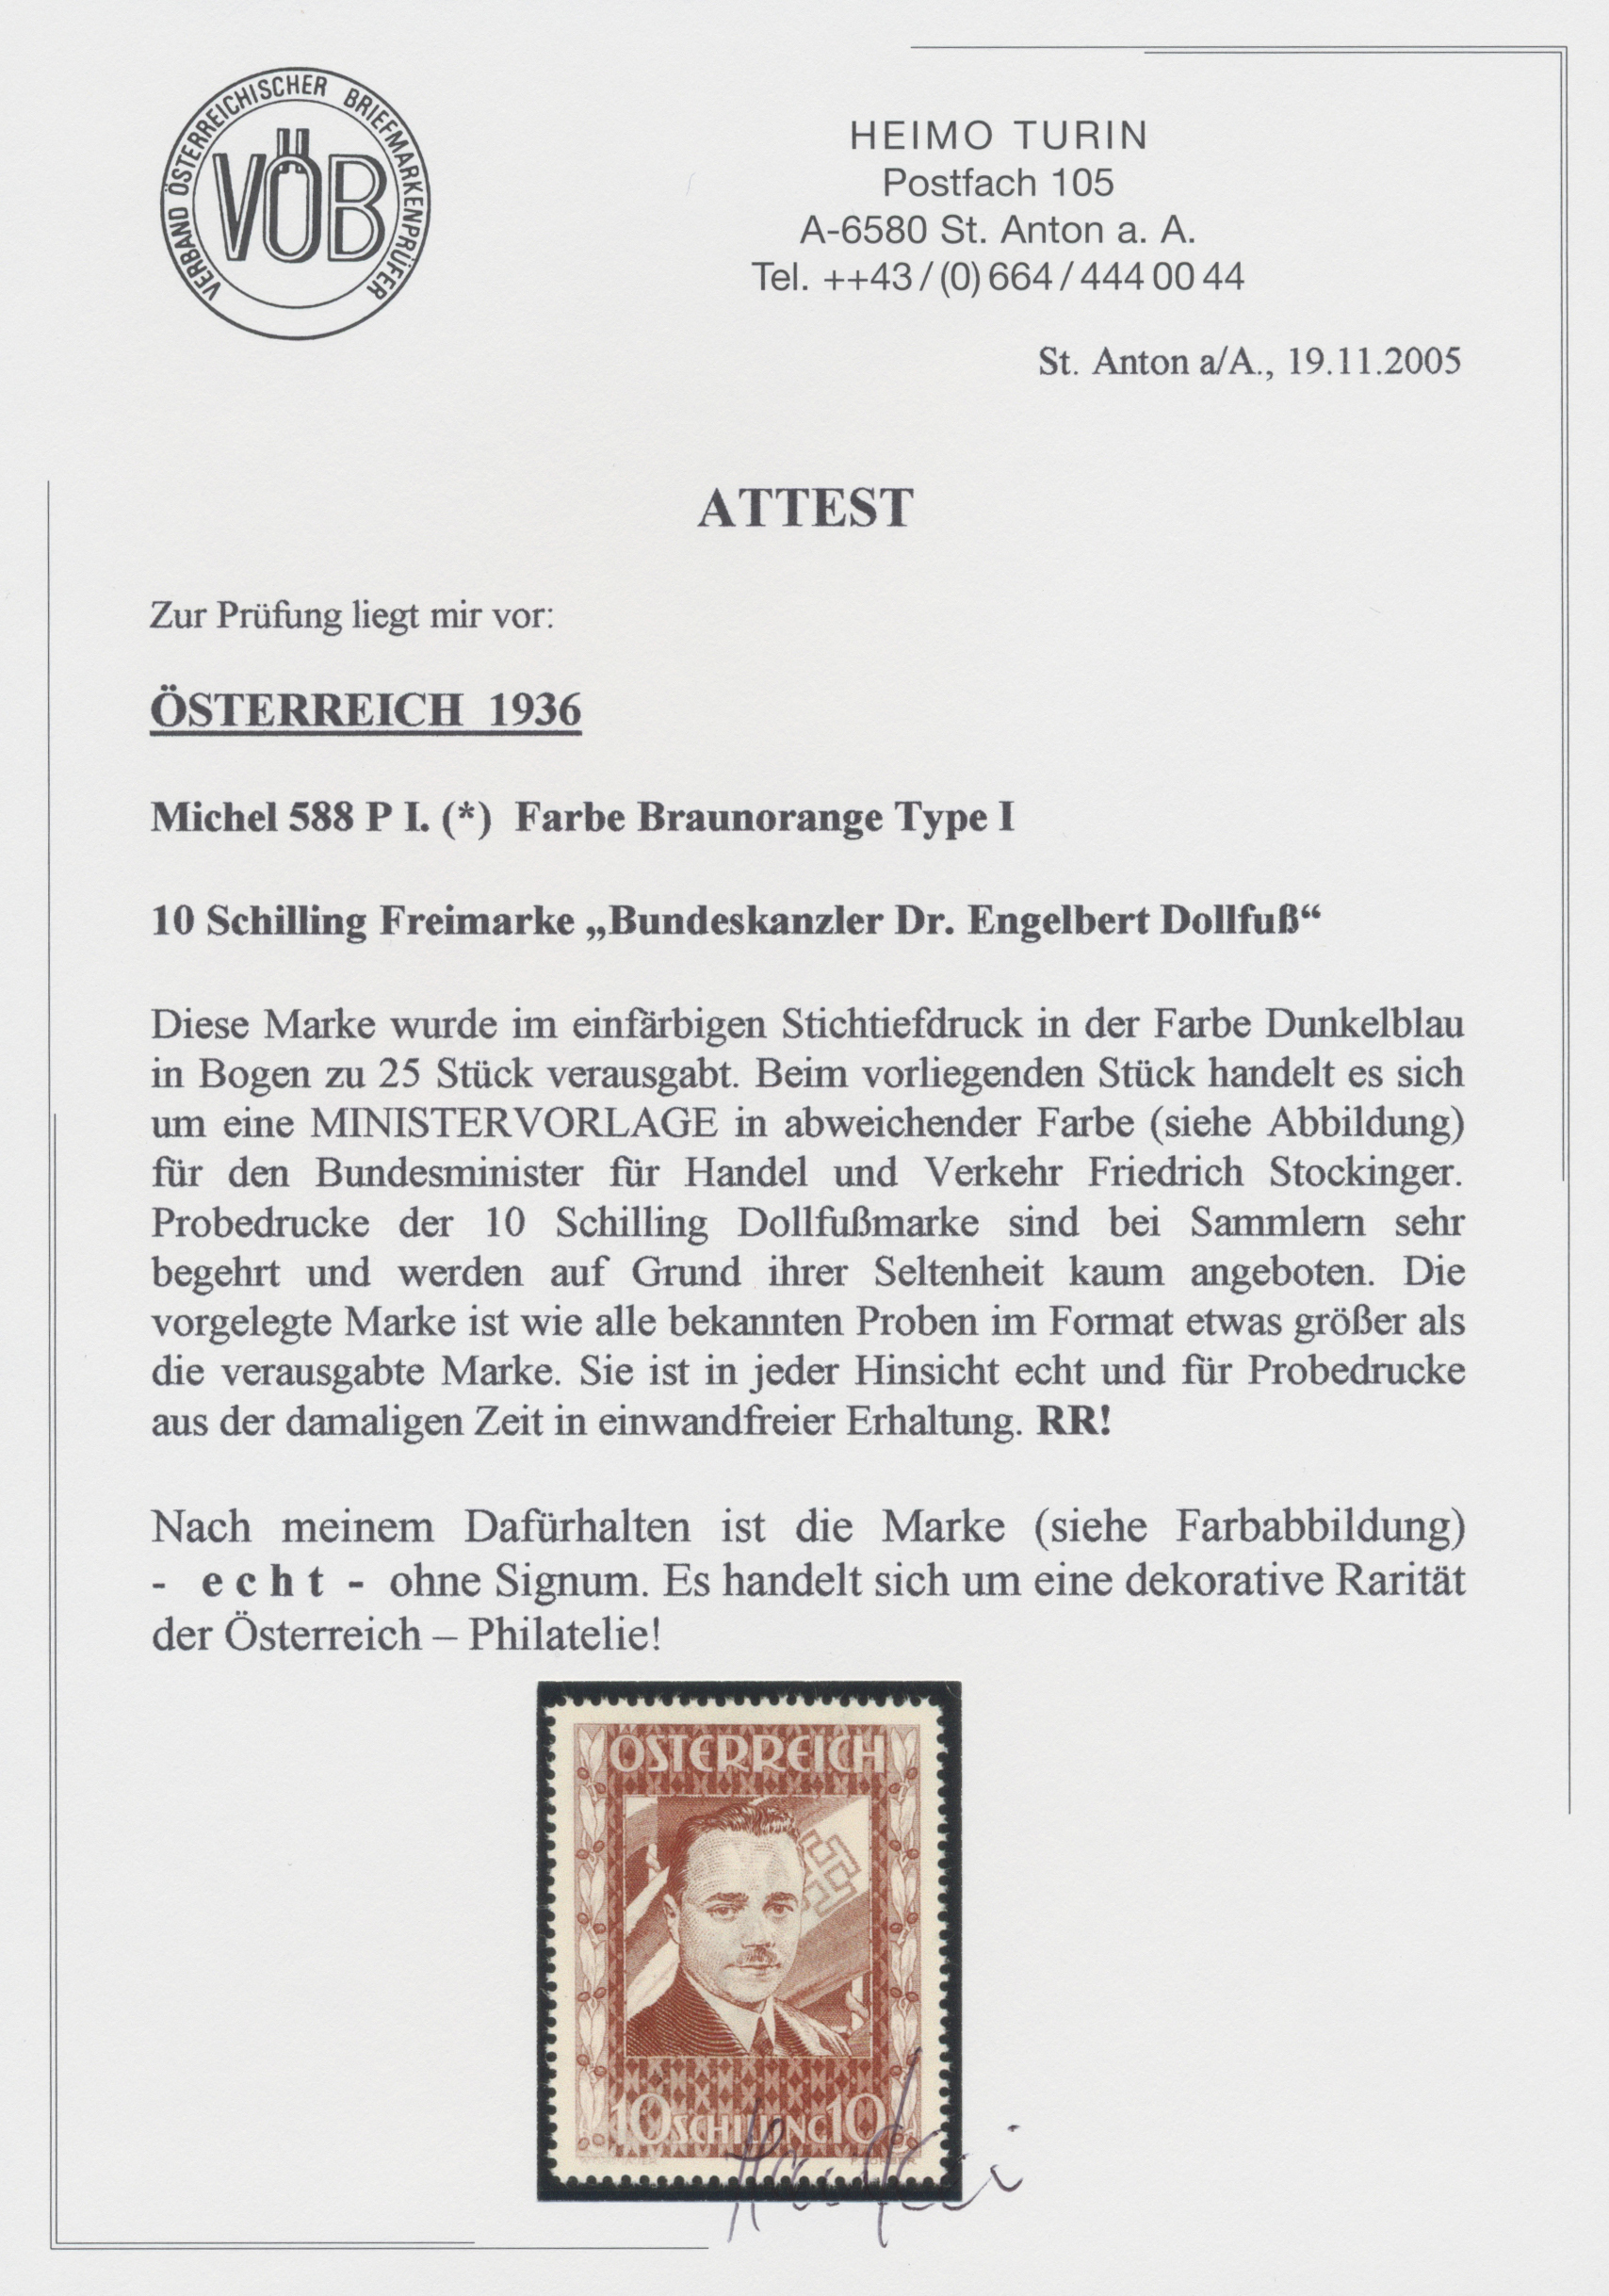 Lot 00022 - österreich  -  Auktionshaus Christoph Gärtner GmbH & Co. KG Intenational Rarities and contains lots from the collection of Peter Zgonc